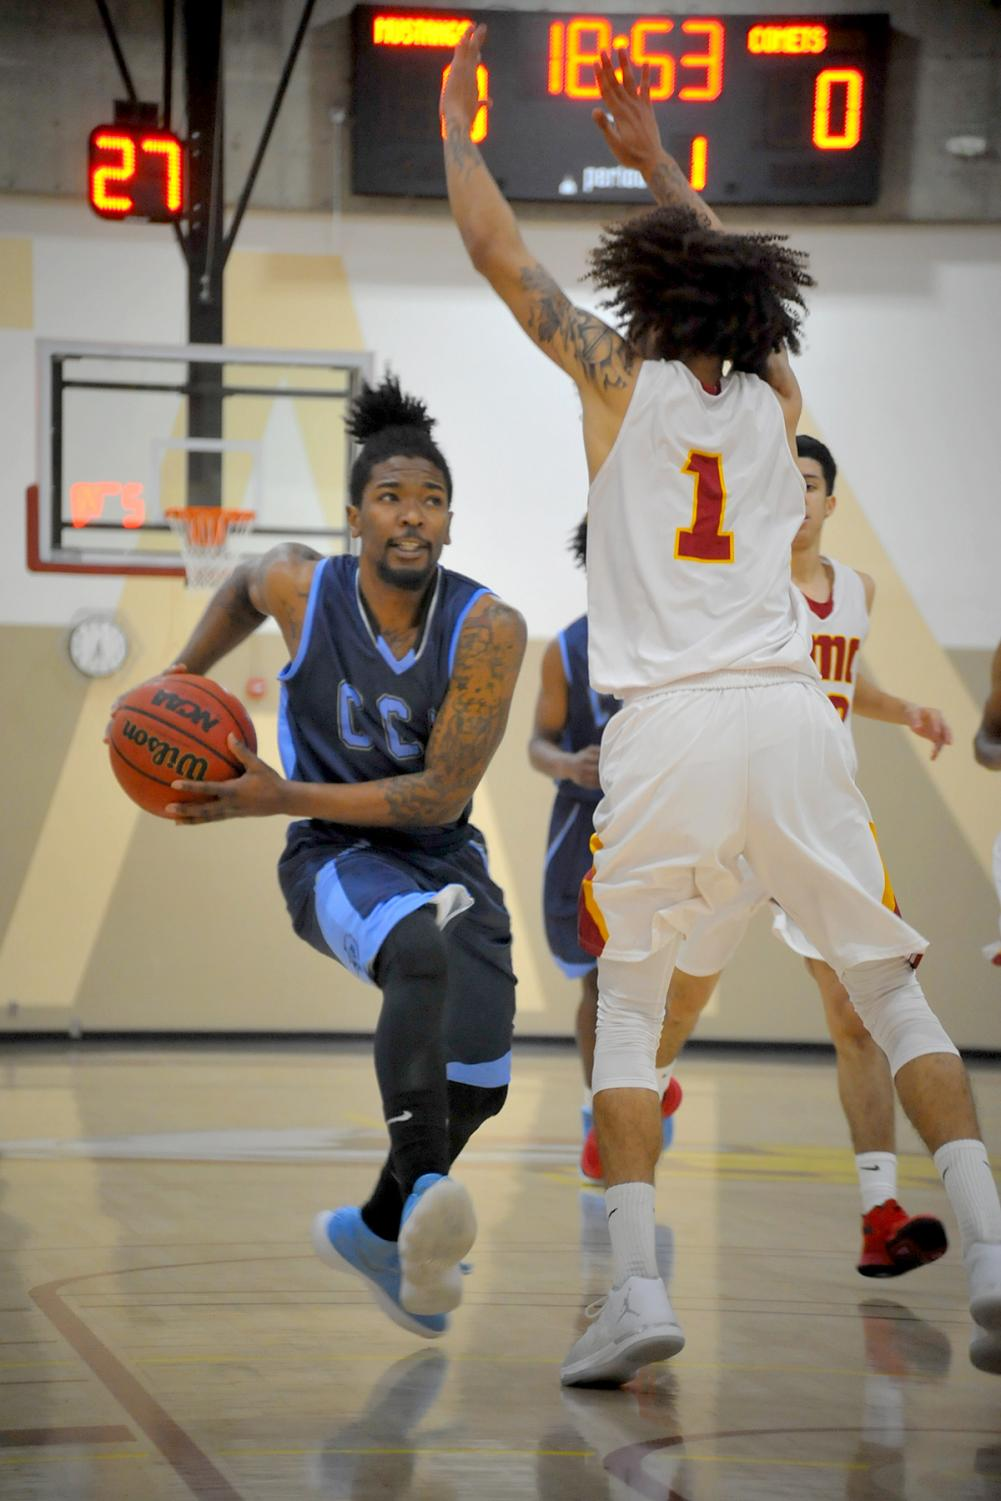 Comet player takes a contested layup during the Comets' 72-62 loss at Los Medanos College on Friday.